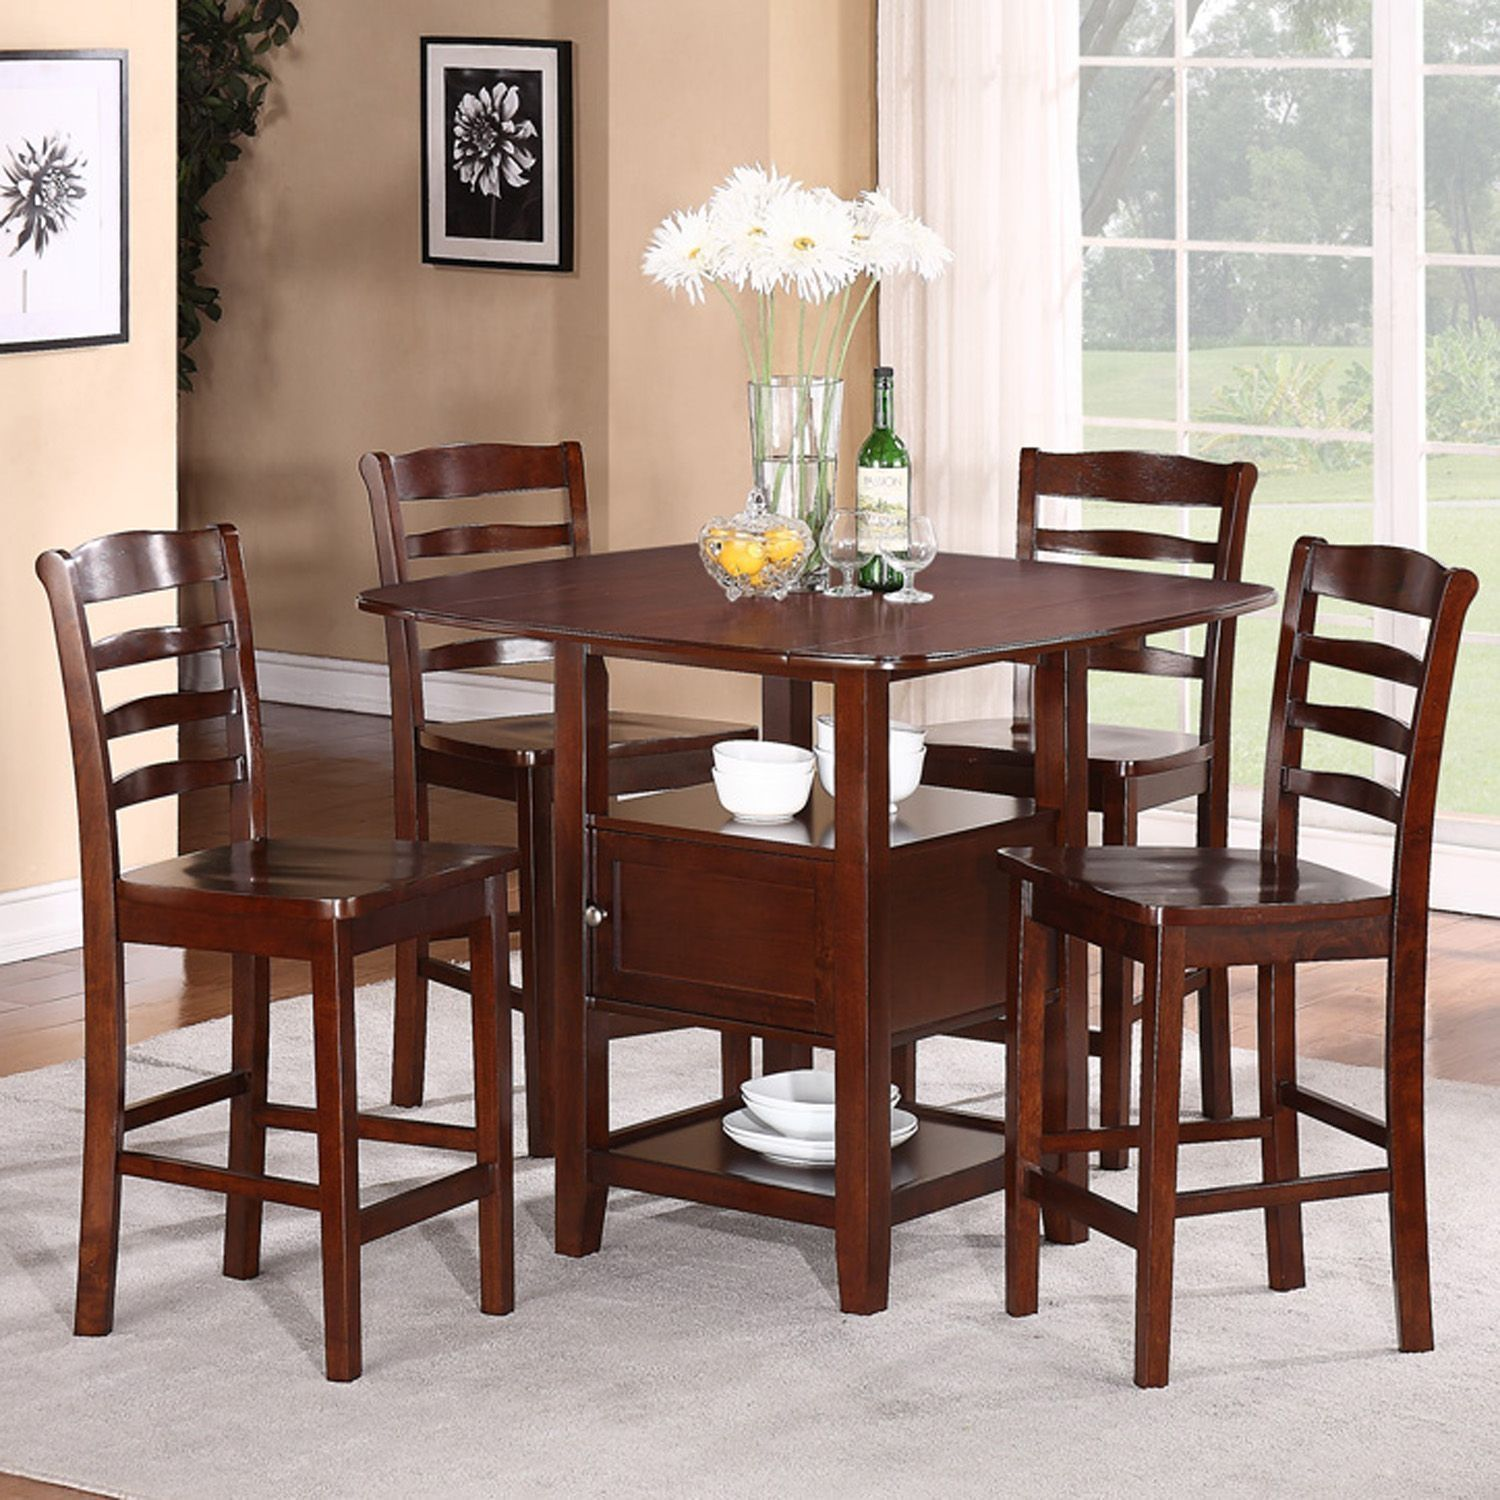 Harlem Furniture Dining Room Sets